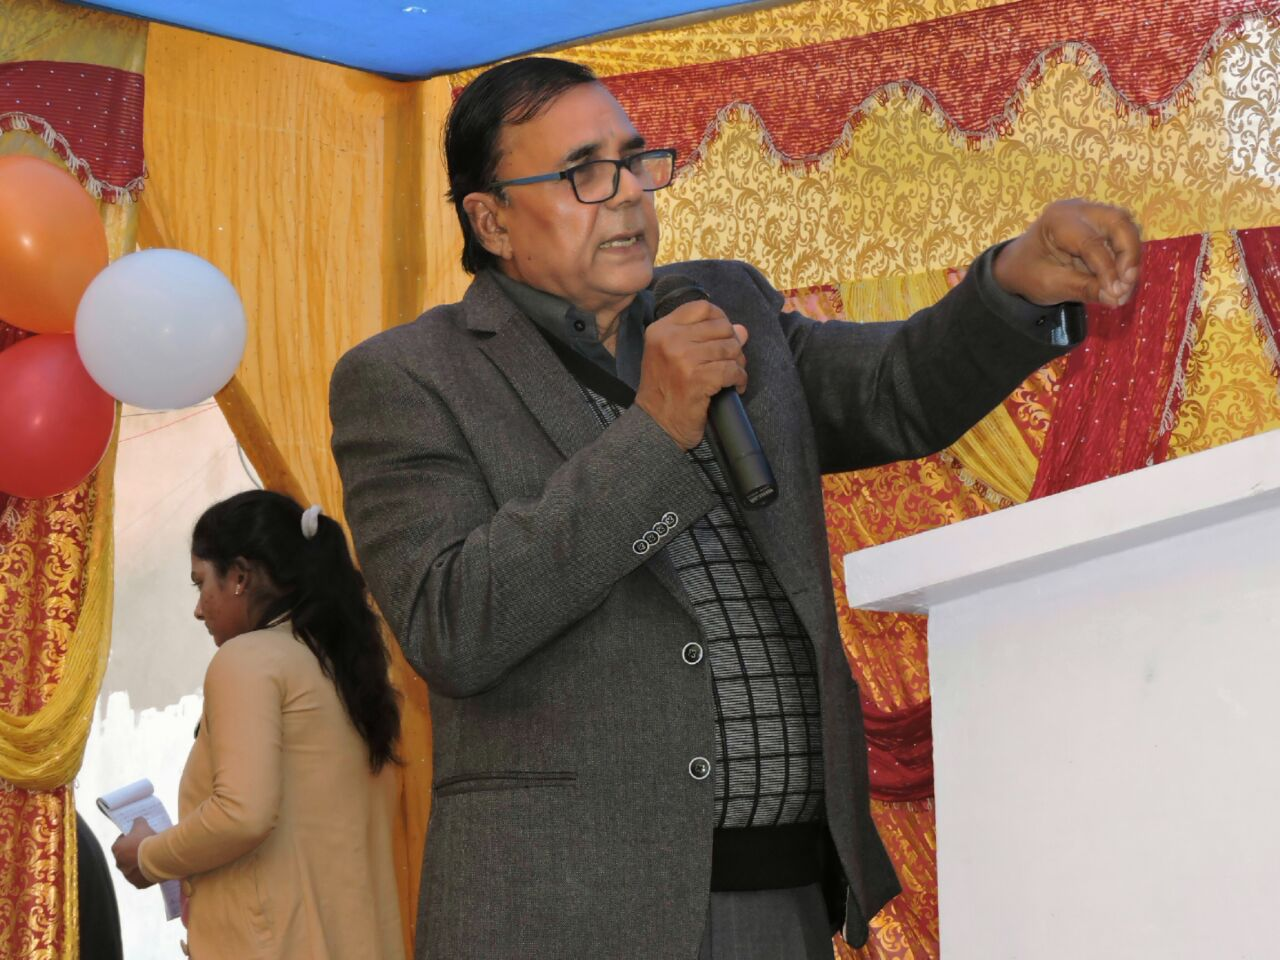 Chief Guest Dr.Bhupendra Narayan Yadav Madhepuri delivering valuable messages to the students & their guardians in the campus of USA International School , Madhepura .